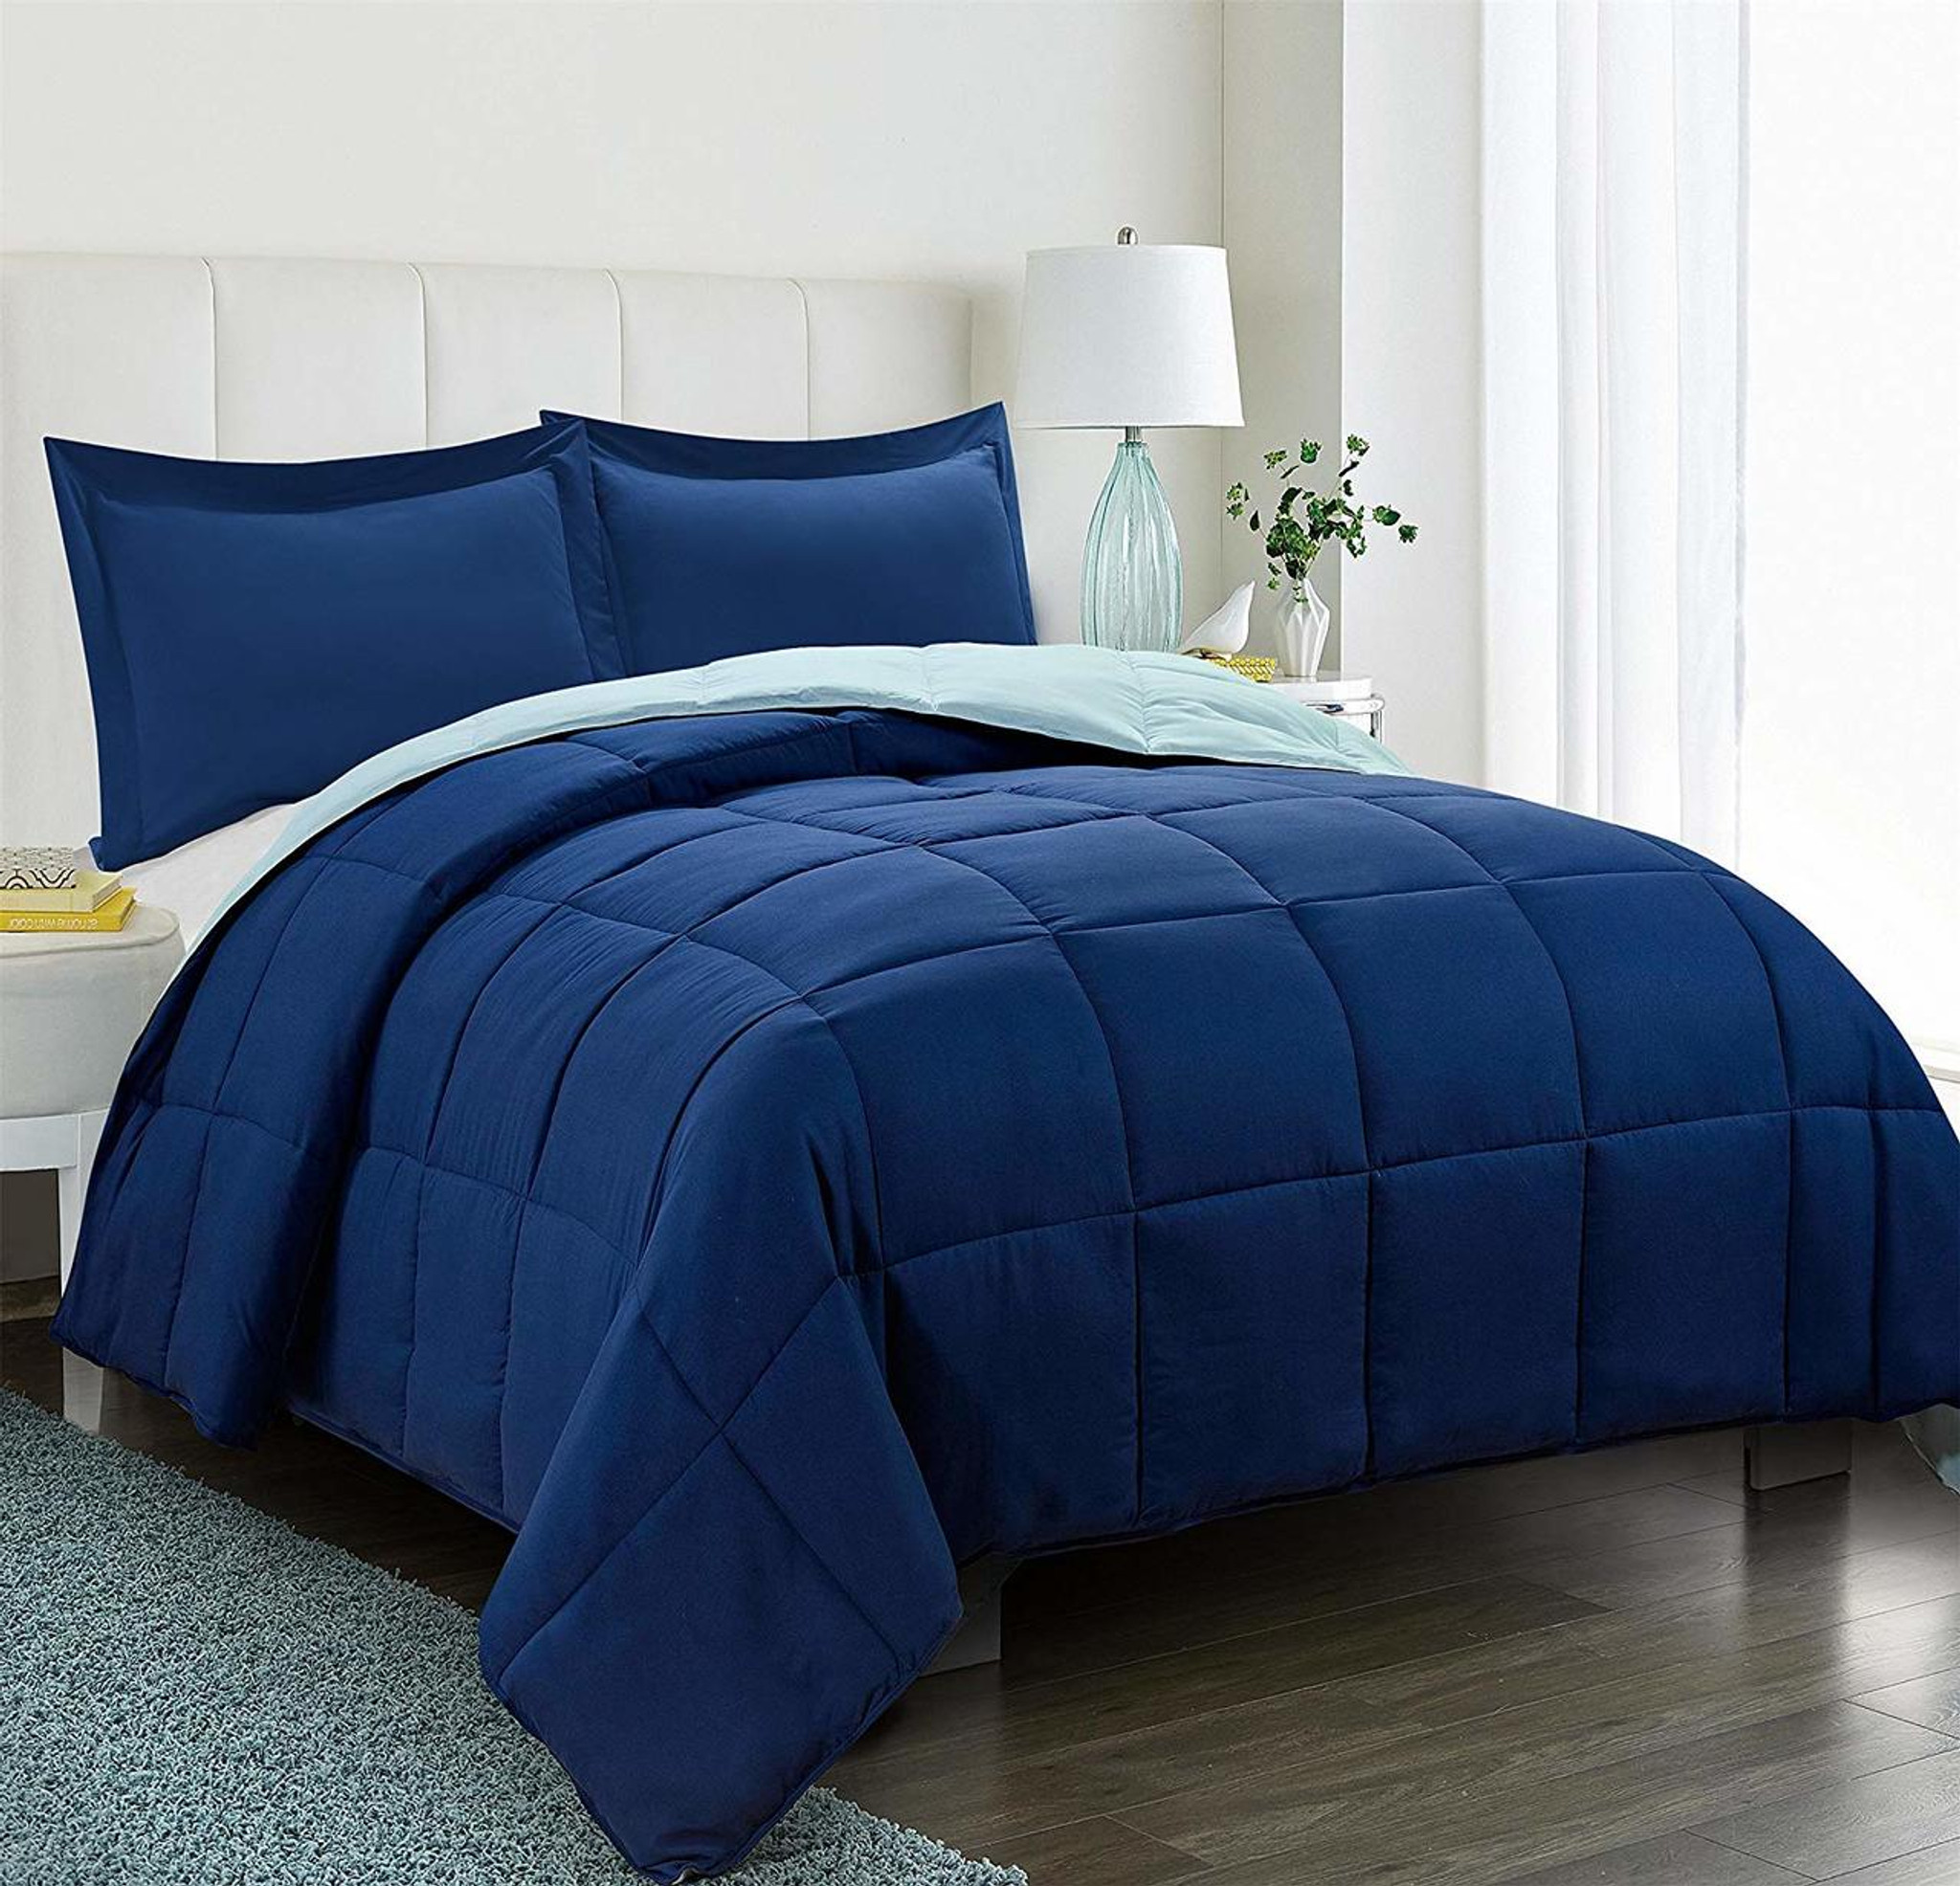 Duvet And Comforter Sets 3pc Down Alternative Comforter Set Navy Blue All Season Reversible Comforter With Two Shams Quilted Duvet Insert With Corner Tabs Box